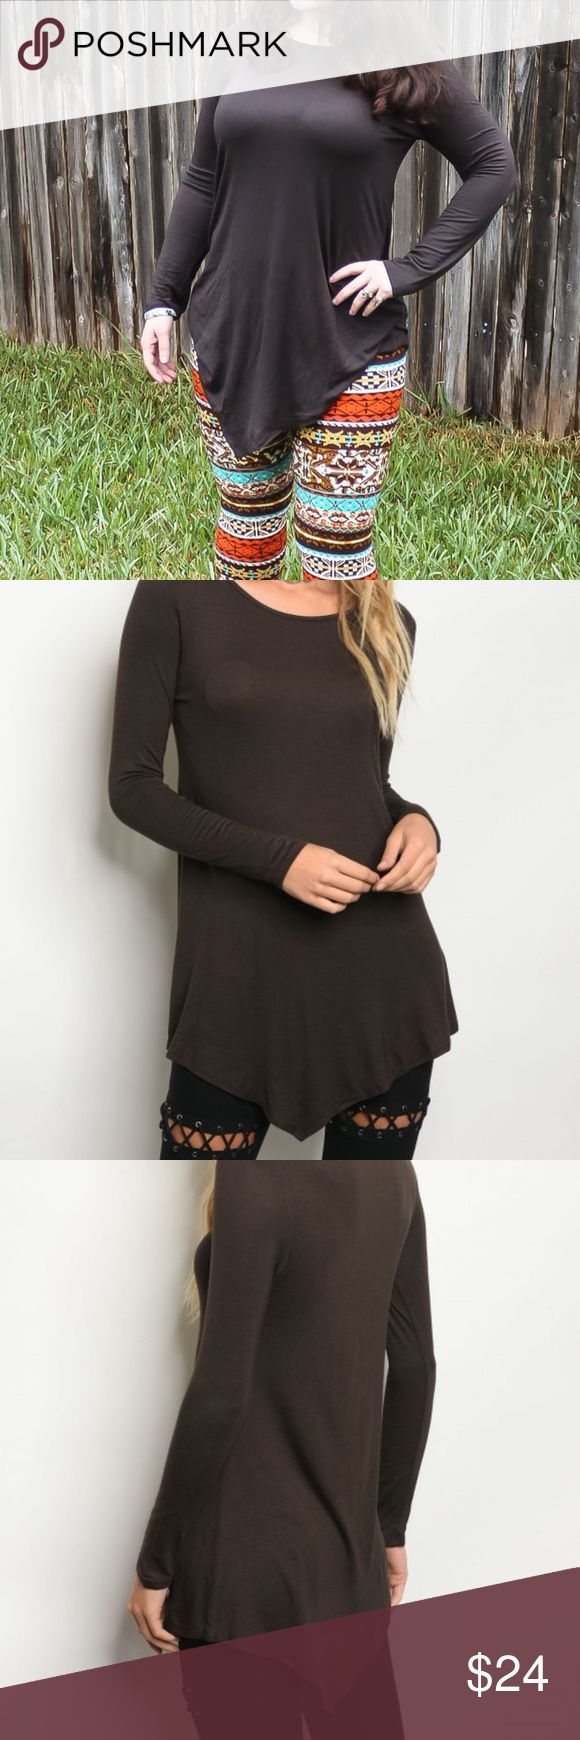 Brown Long Sleeve Top Super soft, stretch, long sleeve jersey tunic with a rounded neckline.  95% RAYON 5% SPANDEX Tops Tees - Long Sleeve